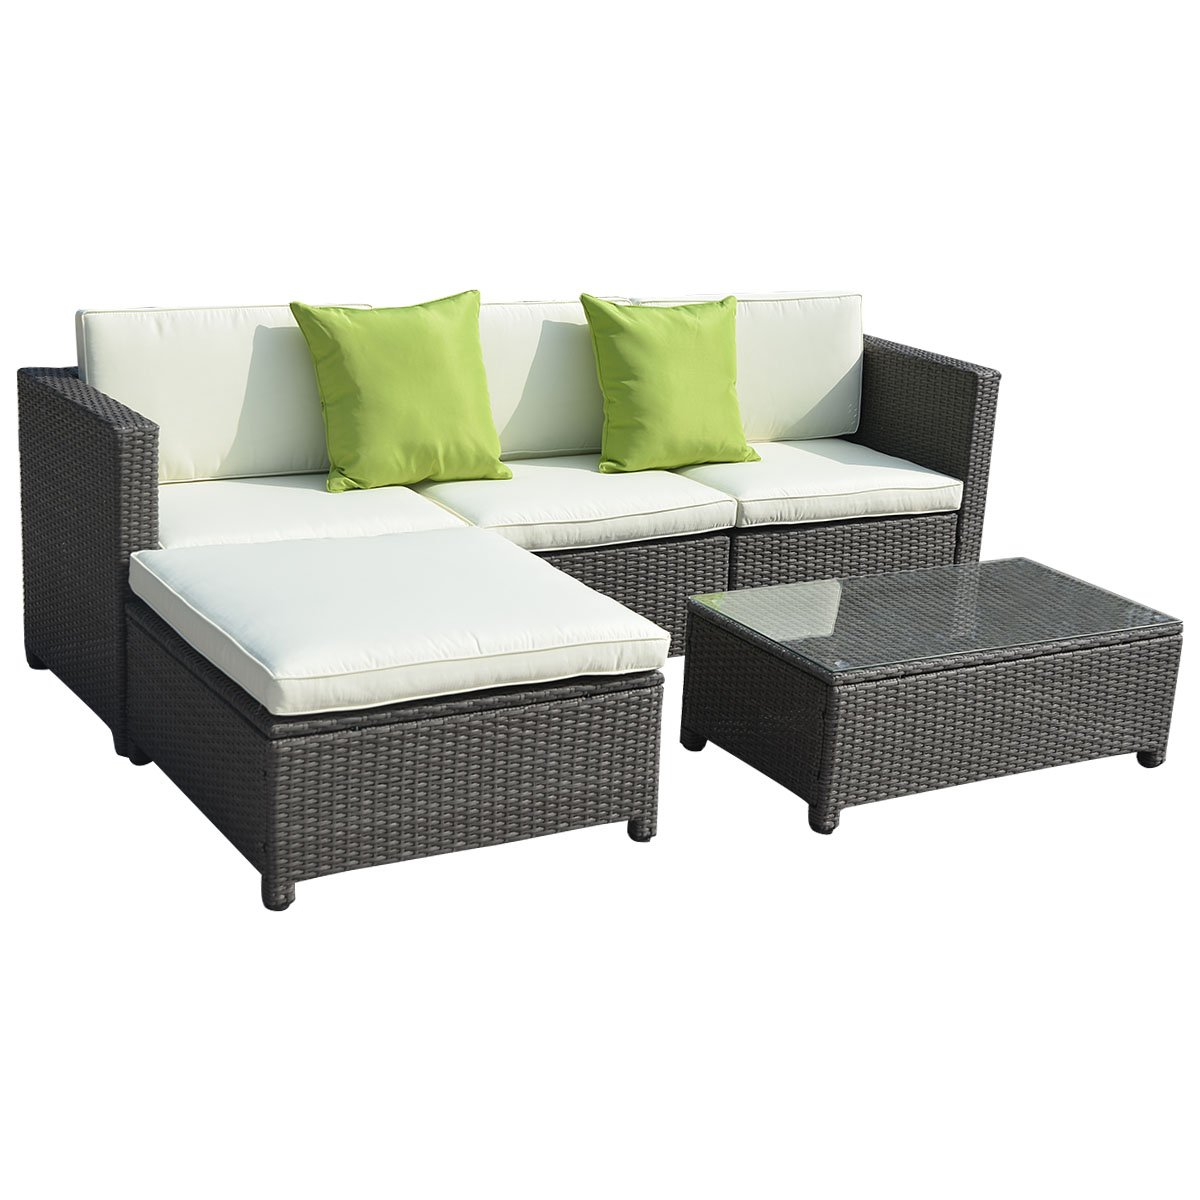 Tangkula 5PC Outdoor Patio Sofa Set Sectional Furniture PE Wicker Rattan Deck Couch (Brown)